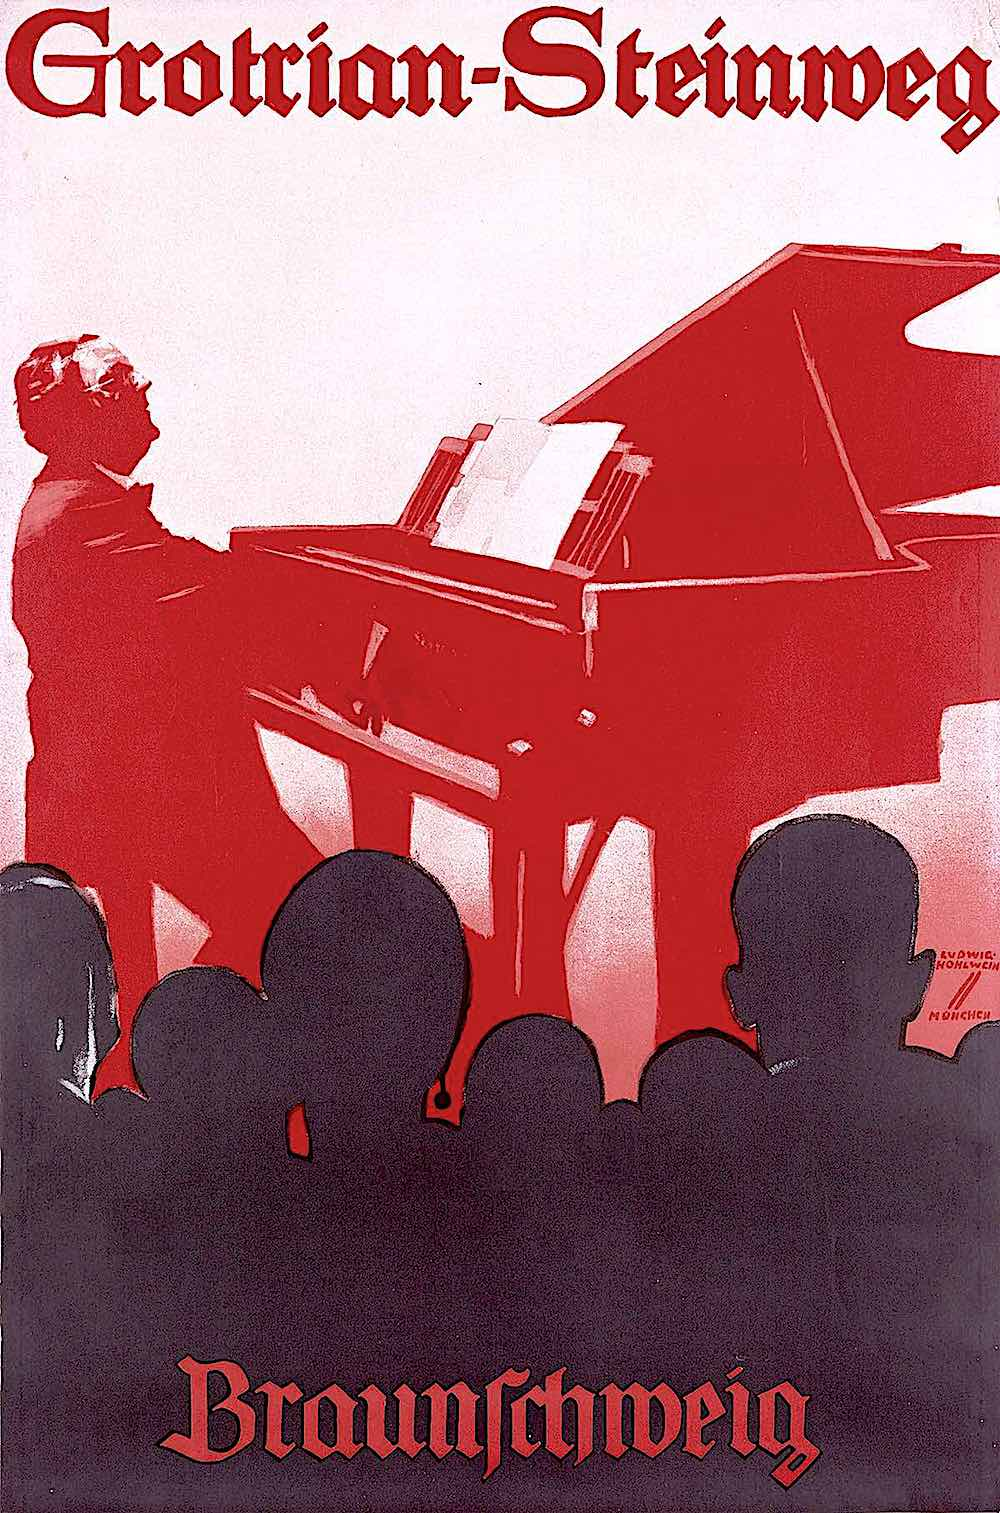 a poster illustration by Ludwig Hohlwein, Grotrian Stainweg pianos